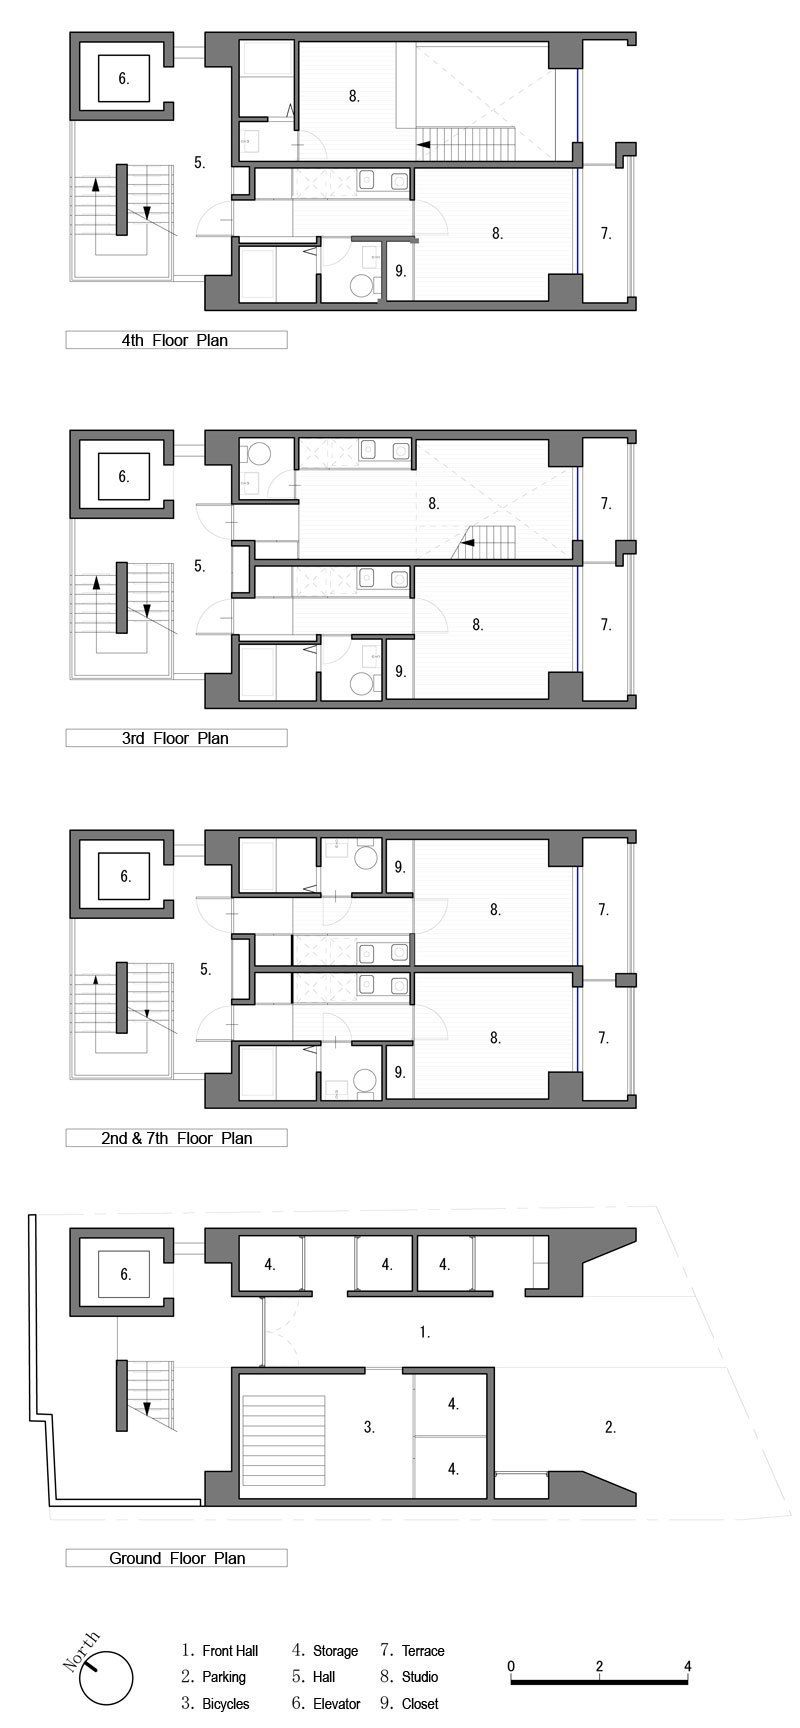 Apartment In Katayama Elevation Section And Floor Plans What We Do Is Secret Hotel Floor Plan House Plans With Pictures Apartment Floor Plans